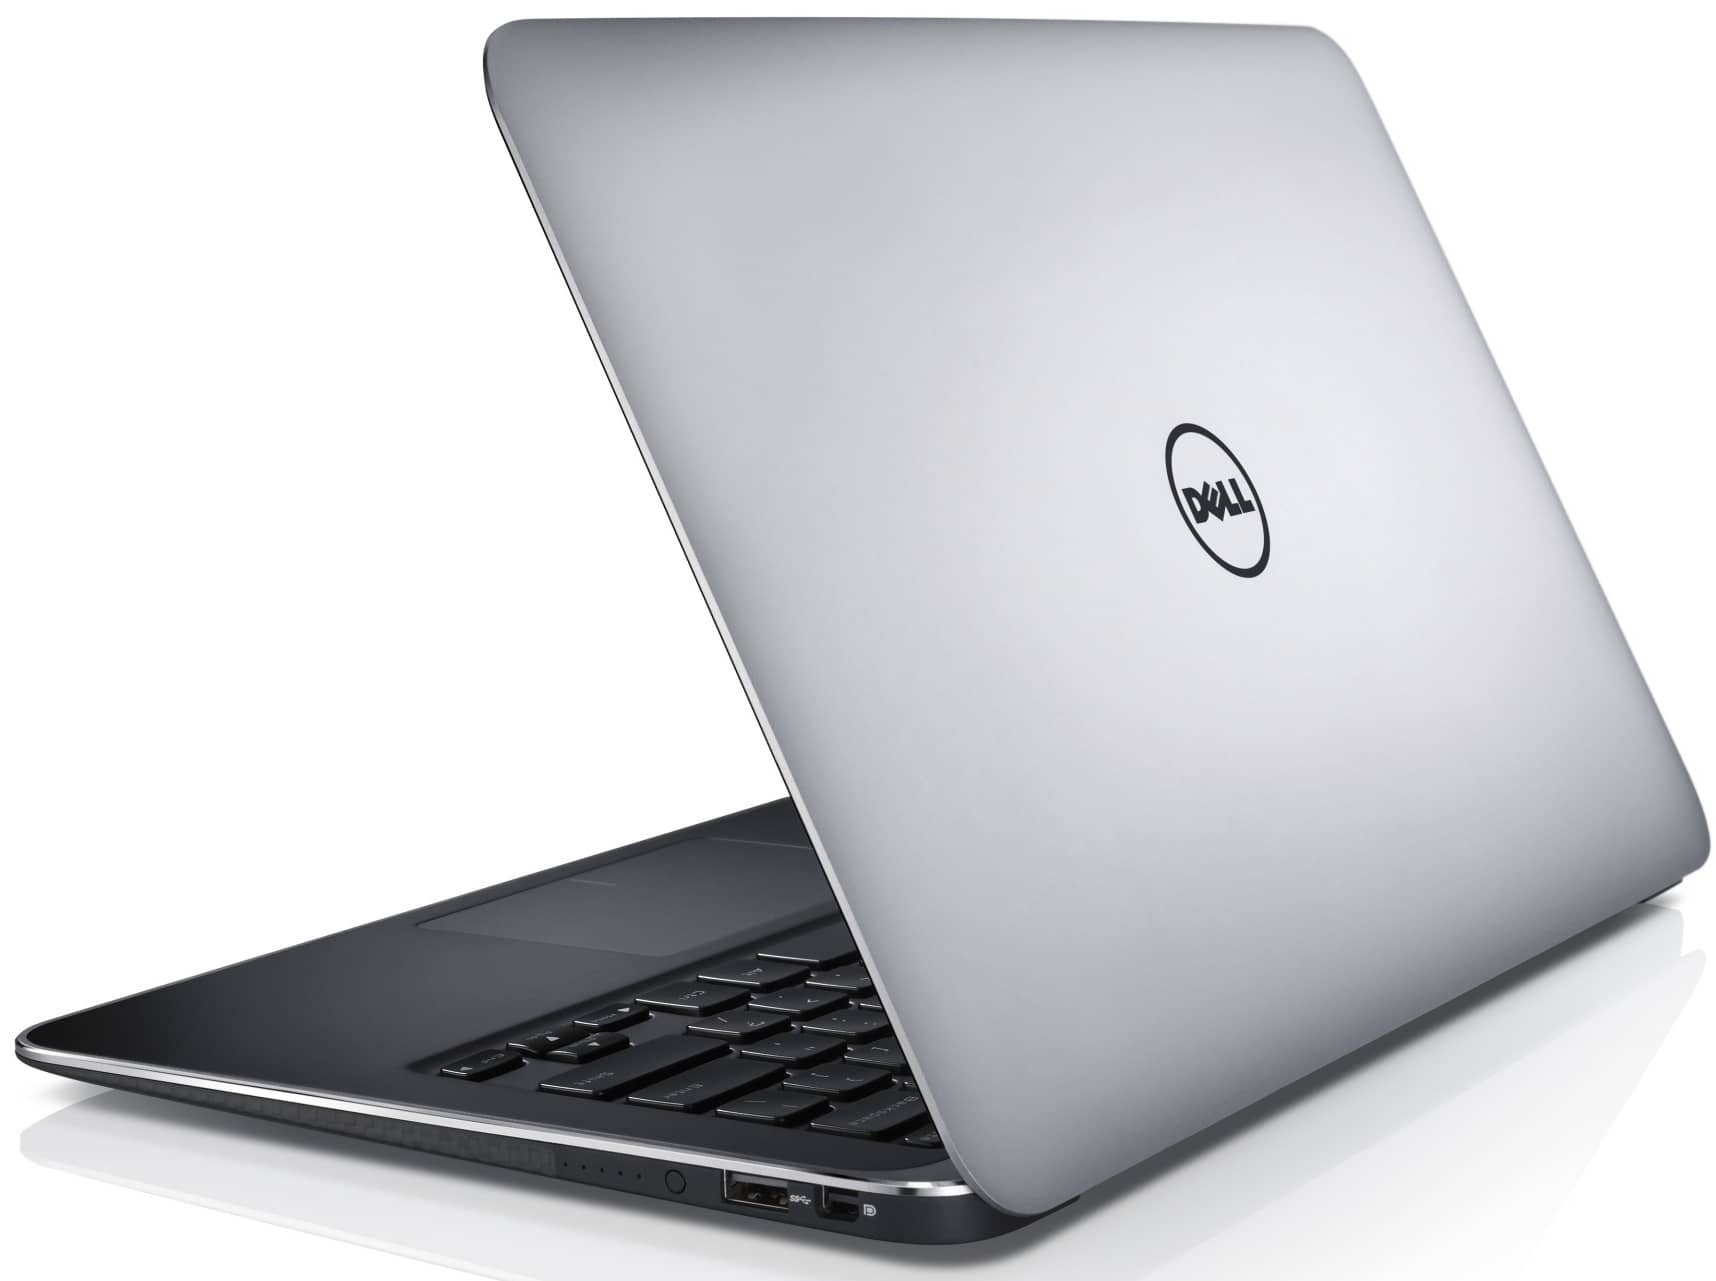 DELL cps 13 laptop